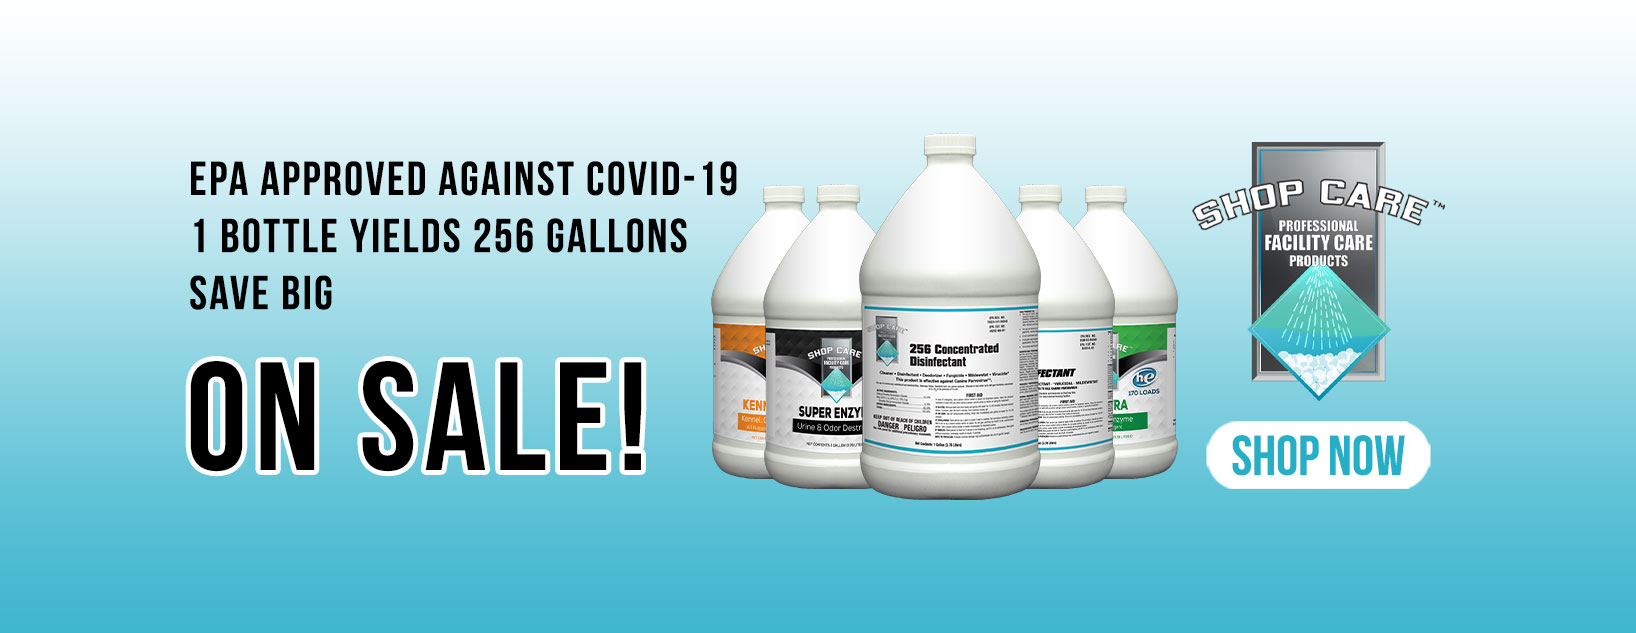 256 Concentrated disinfectant on sale!